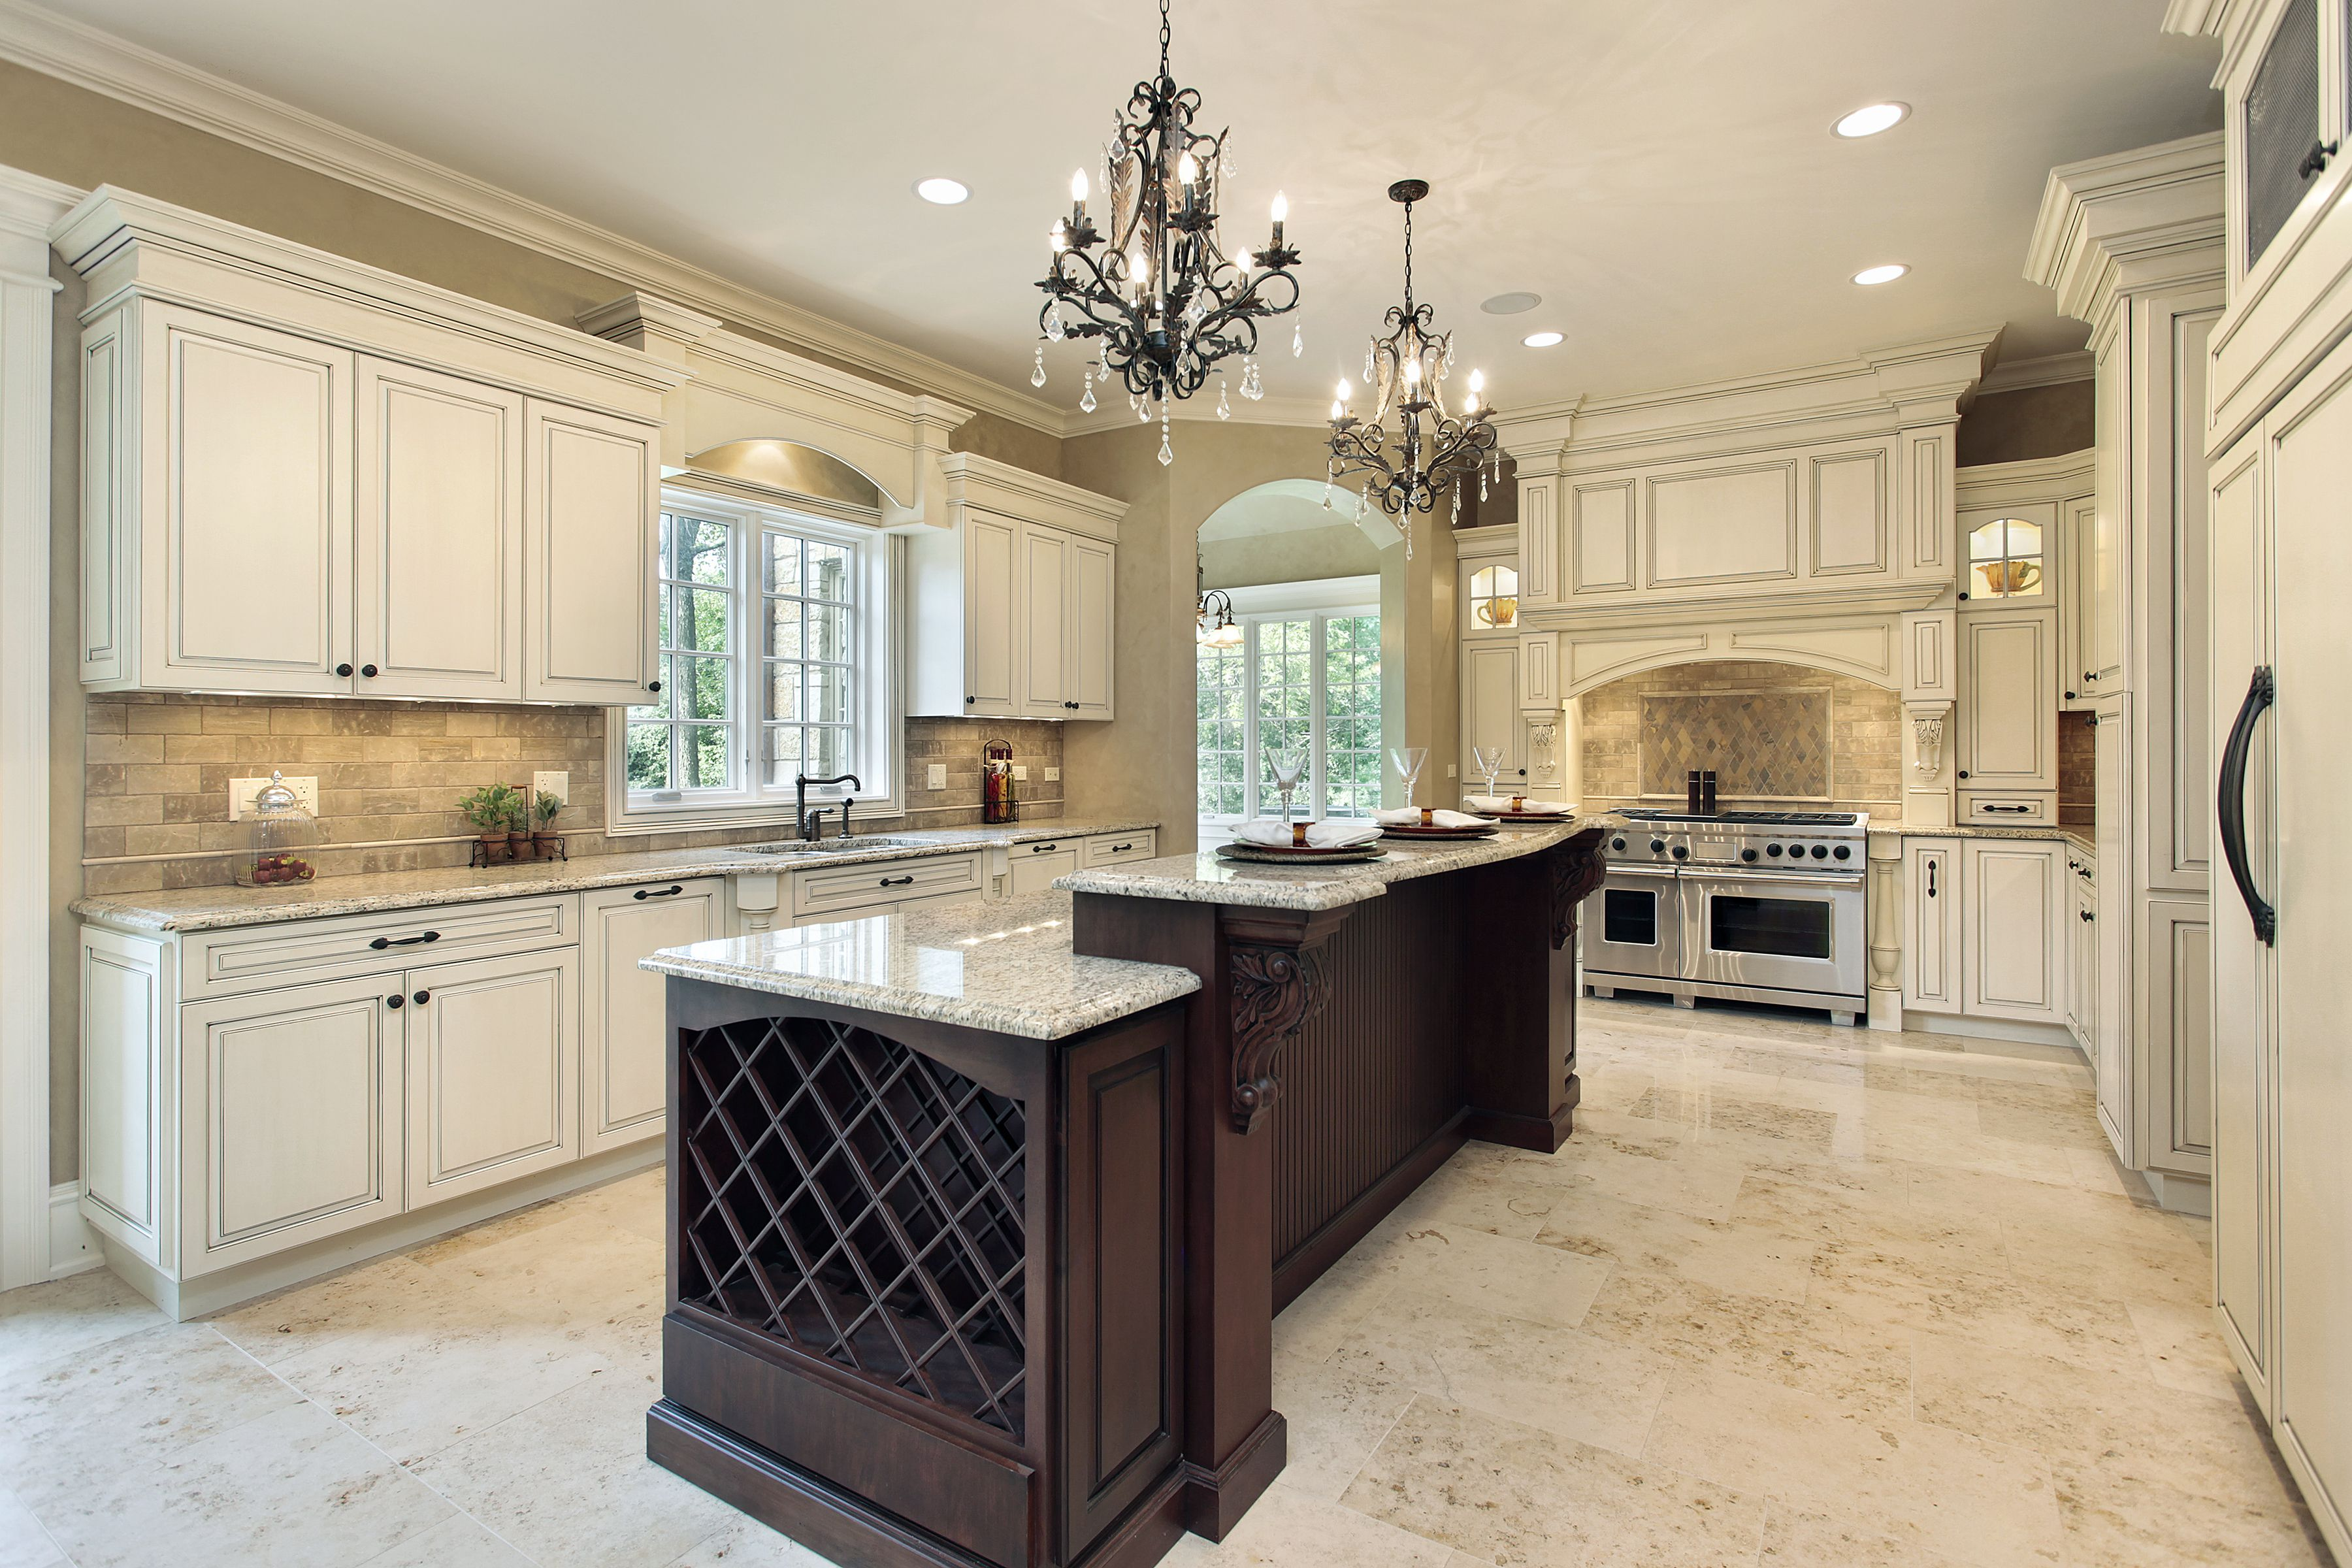 Elegant kitchen with white kitchen and espresso